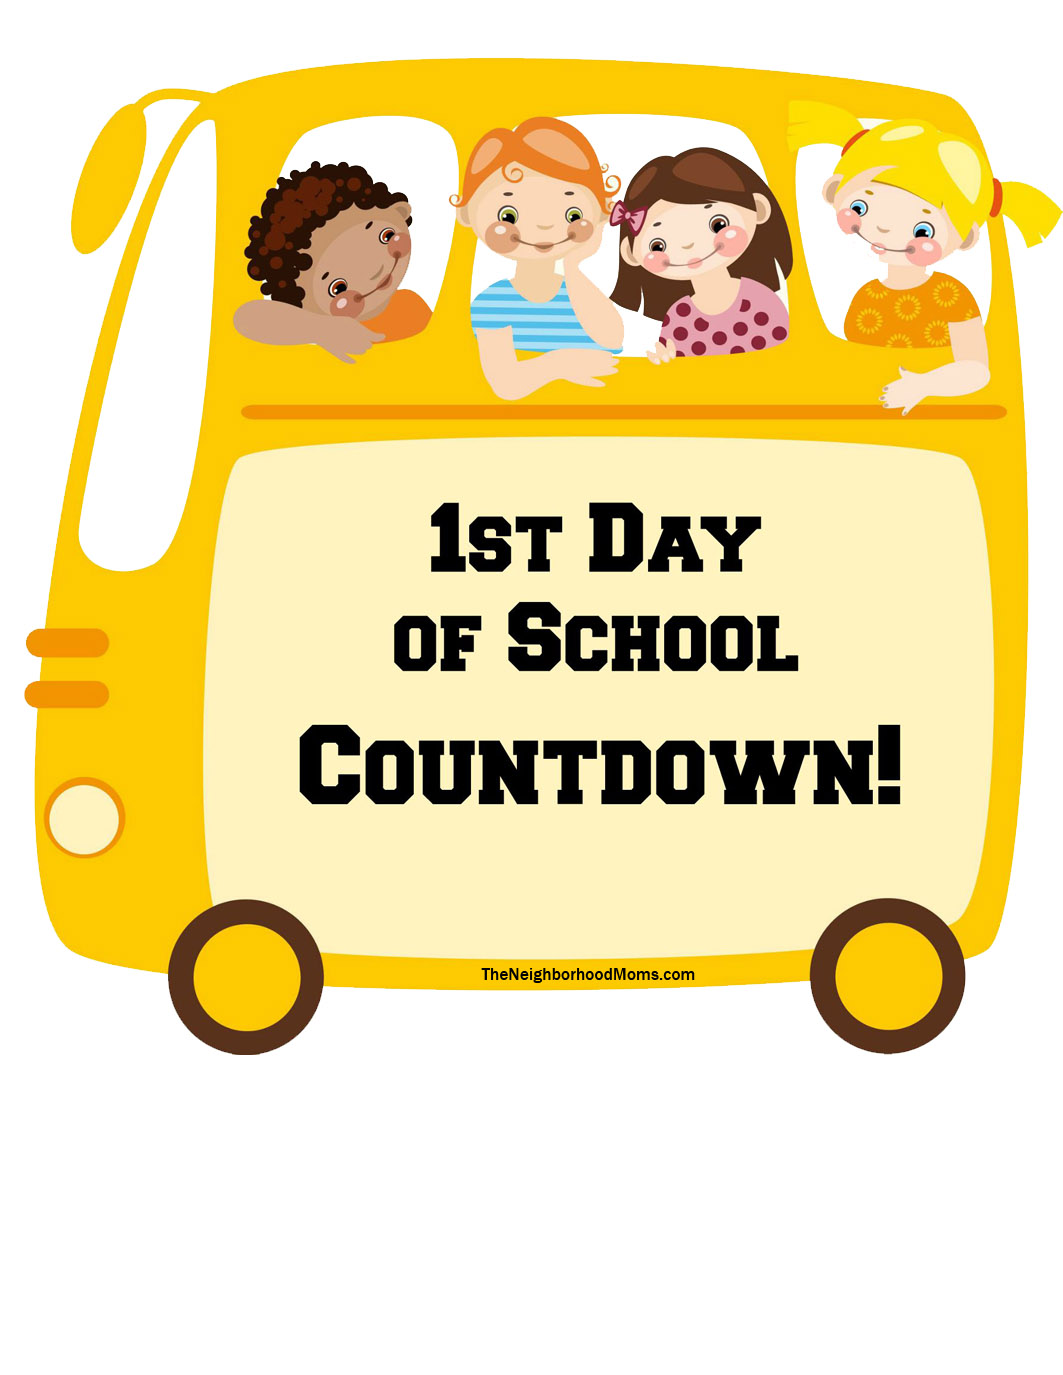 Countdown back to school clipart jpg free download Back to School Countdown Printable - The Neighborhood Moms jpg free download